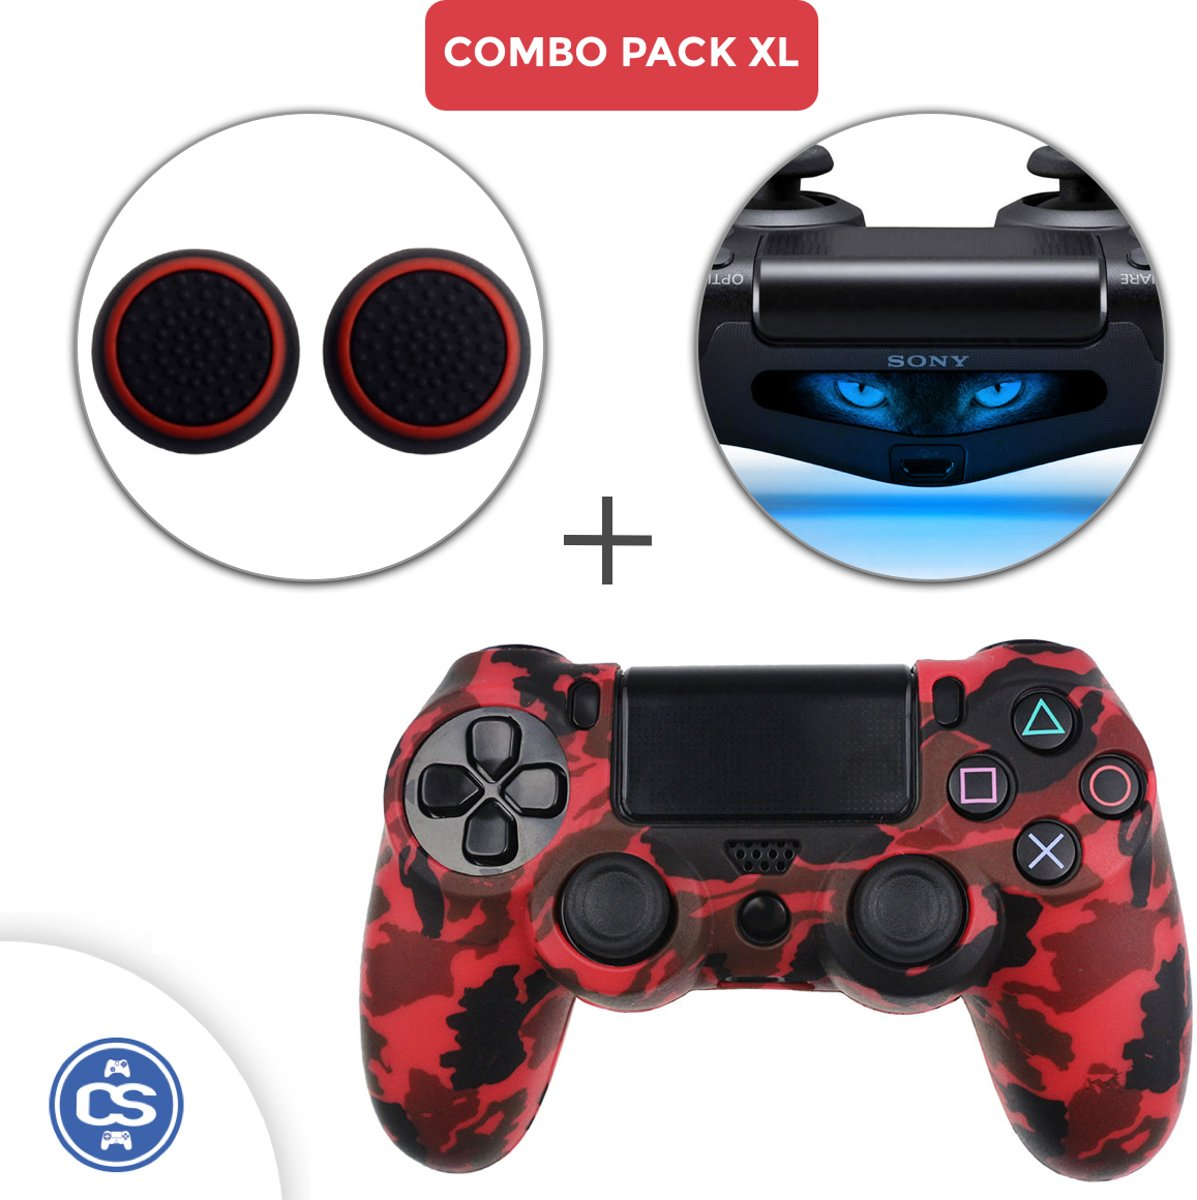 Camo Rood Siliconen Beschermhoes + Thumb Grips + Lightbar Skin voor PS4 Dualshock PlayStation 4 Controller - Softcover Hoes / Case